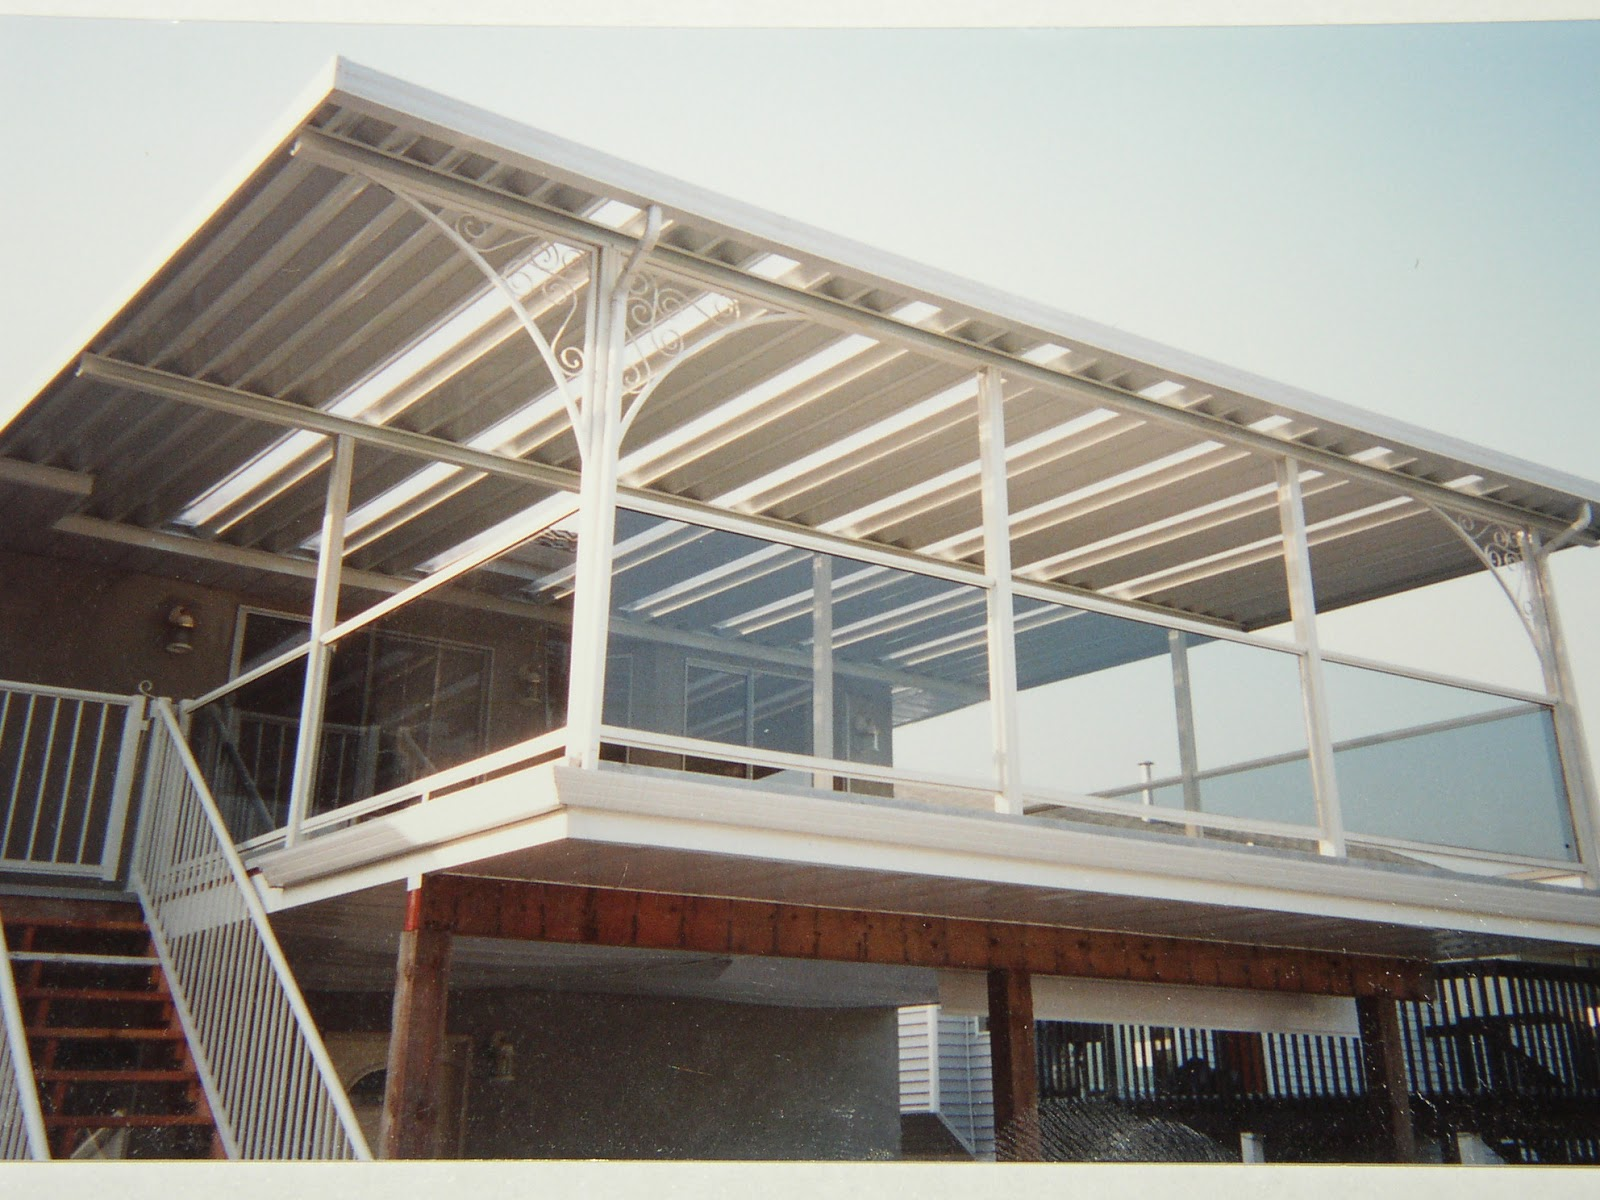 patio cover awning with mix of aluminum pans and skylights